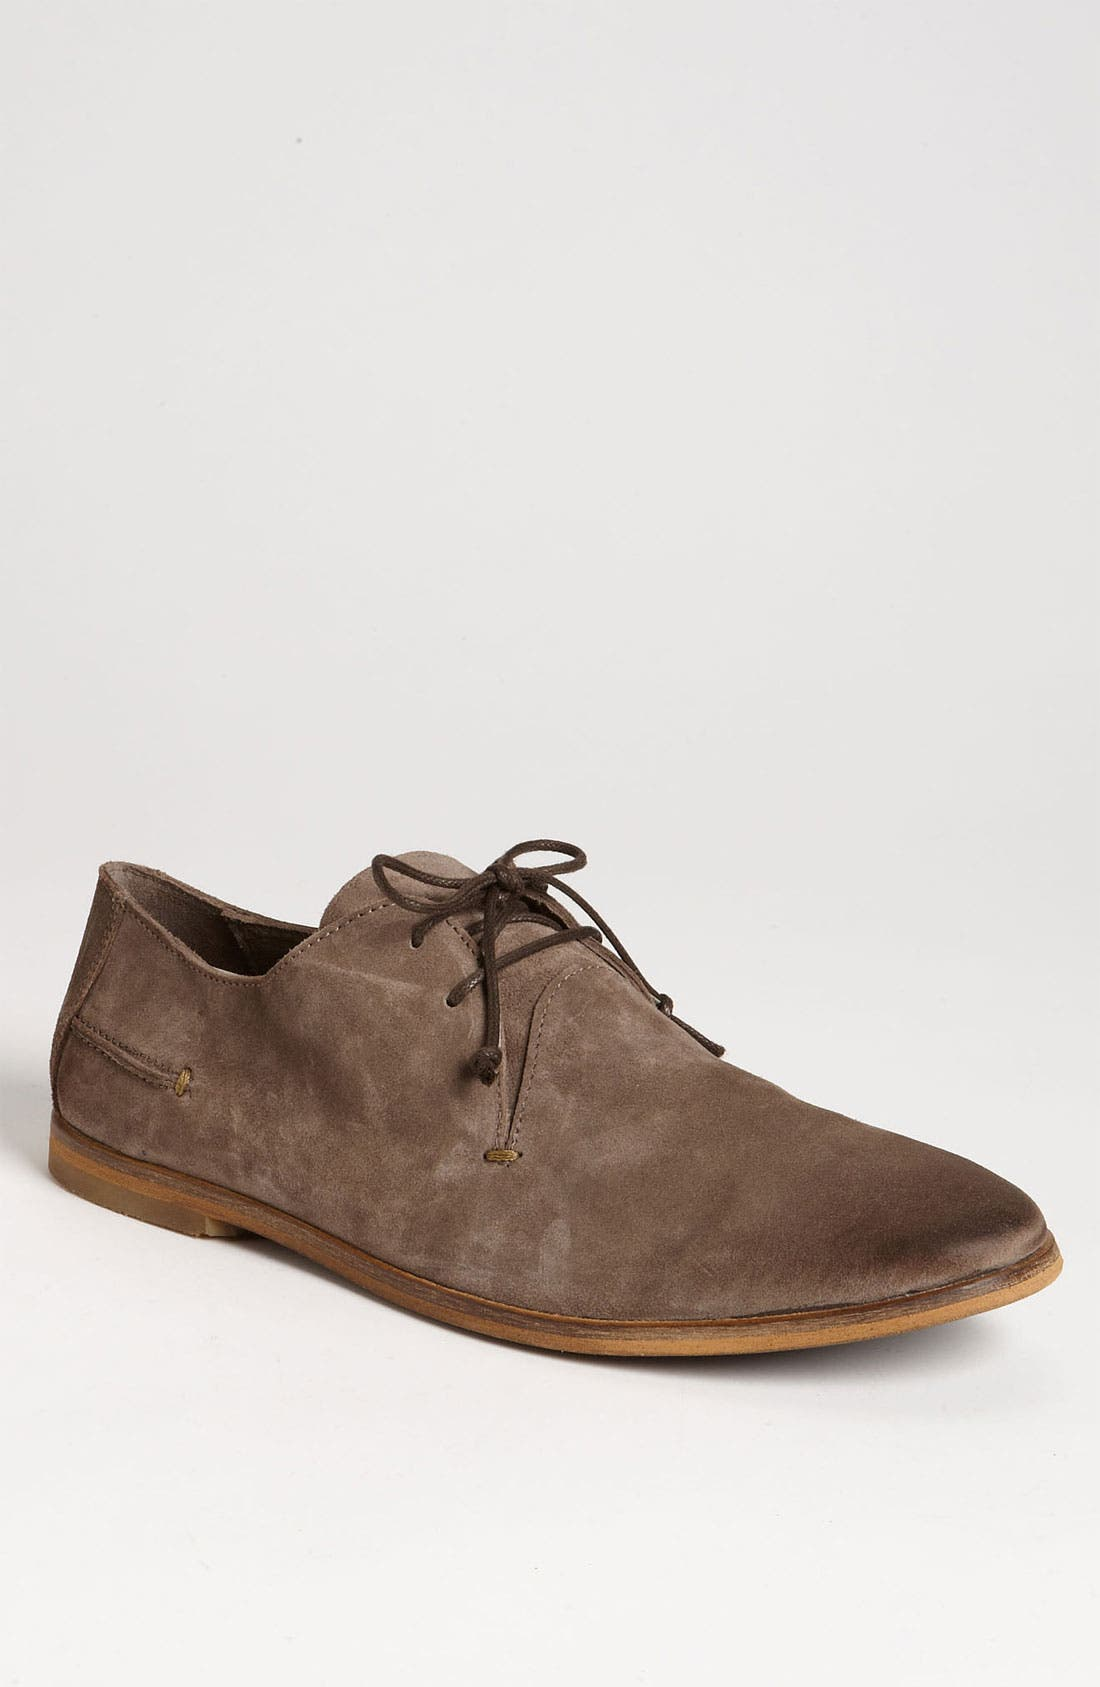 Main Image - Kickers 'Riviero' Oxford (Online Only)